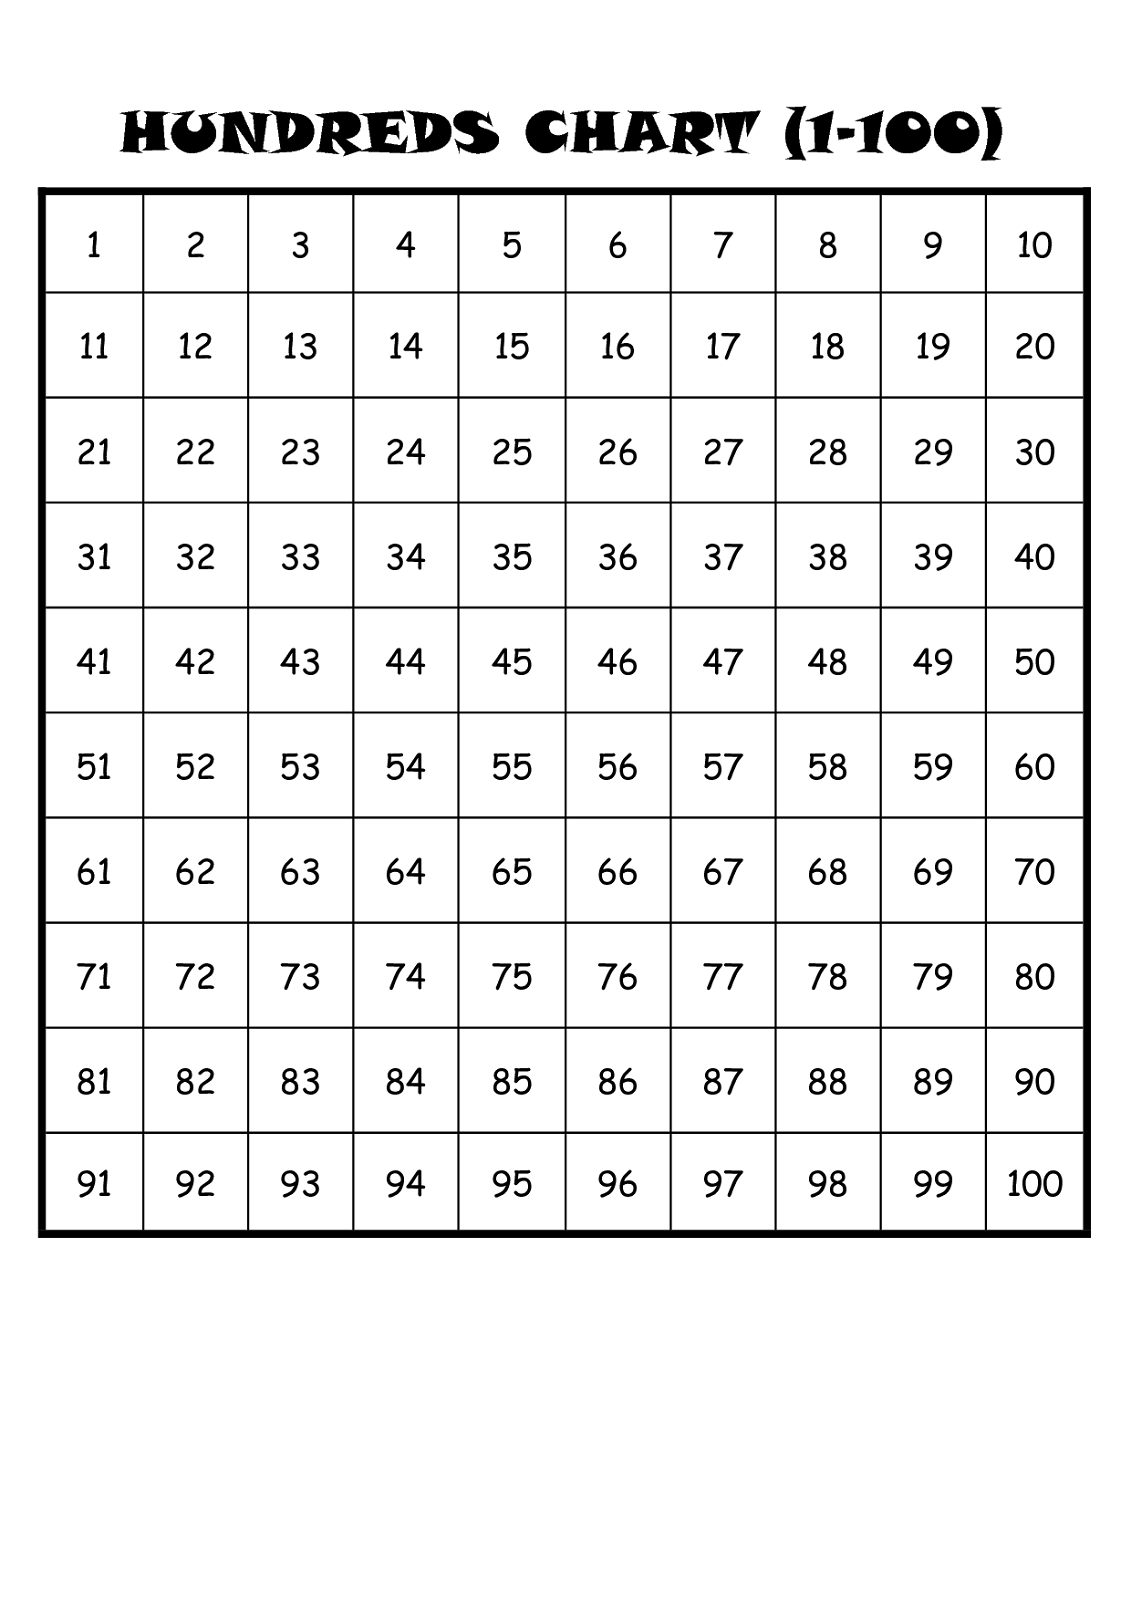 Number Sheet 1-100 to Print | Activity Shelter